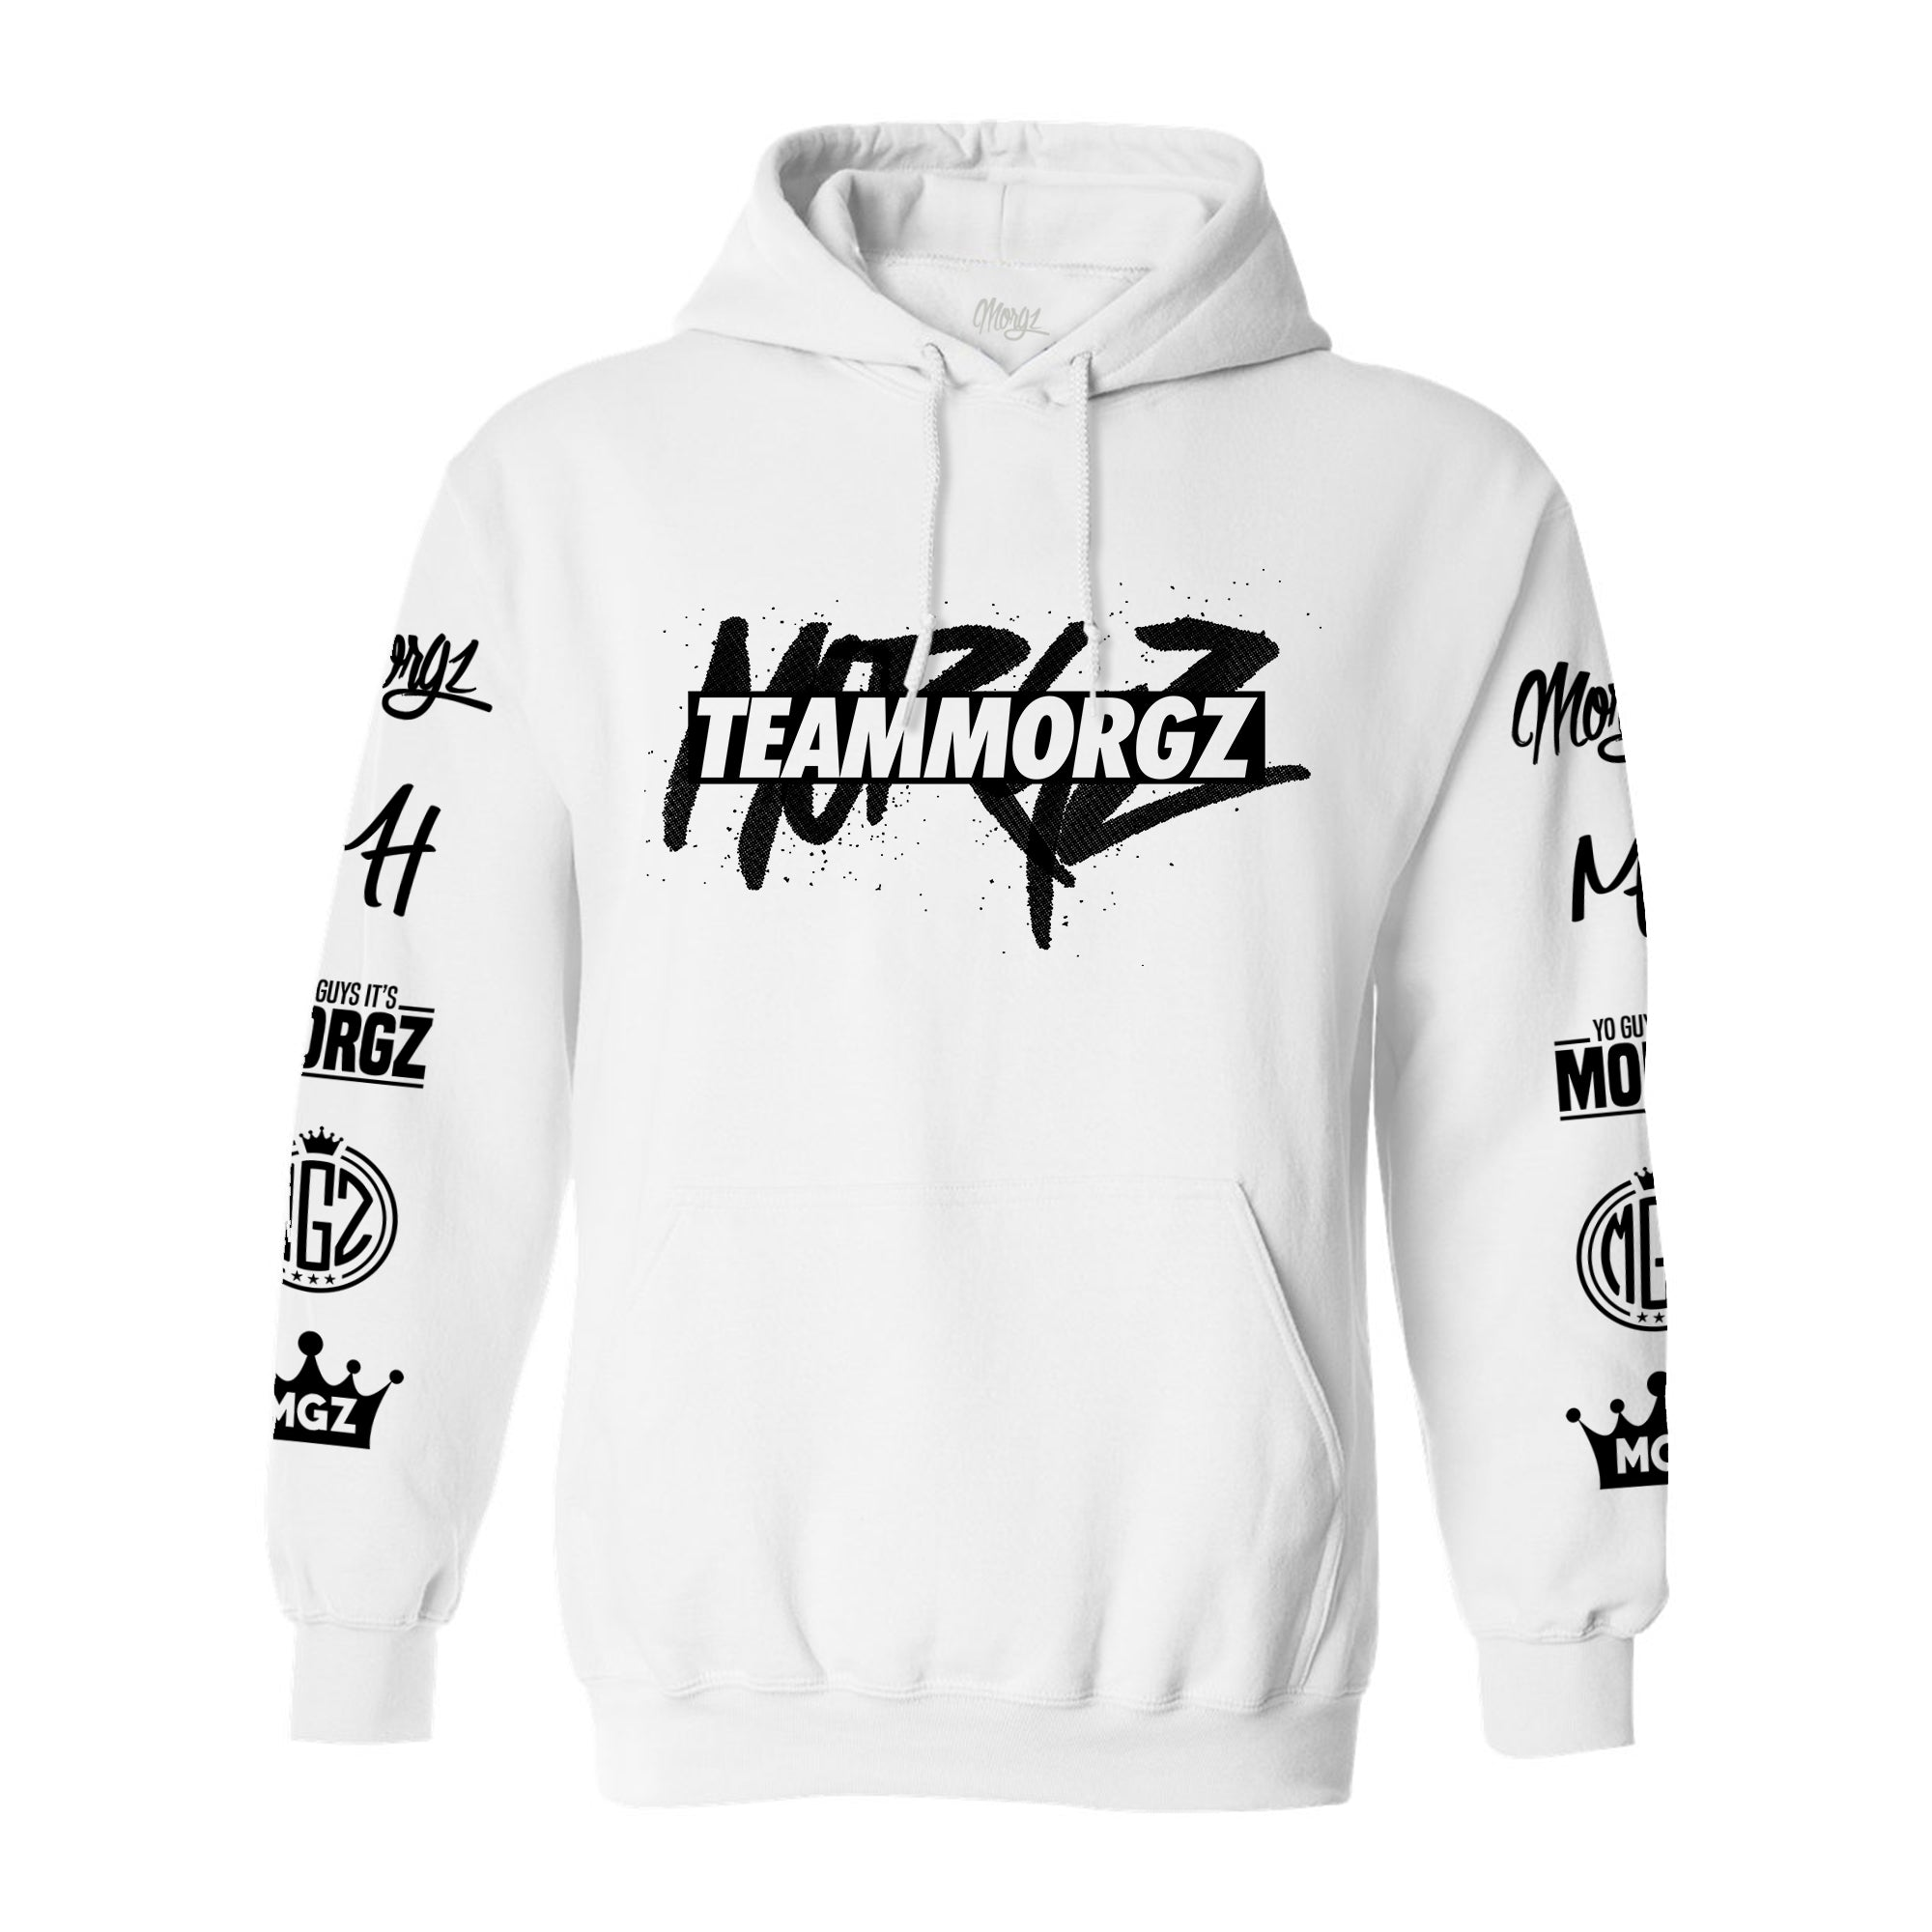 MGZ kids hoodie,MGZ hoodie,MGZ green hoodie,mgz merch inspired by,morgz merch